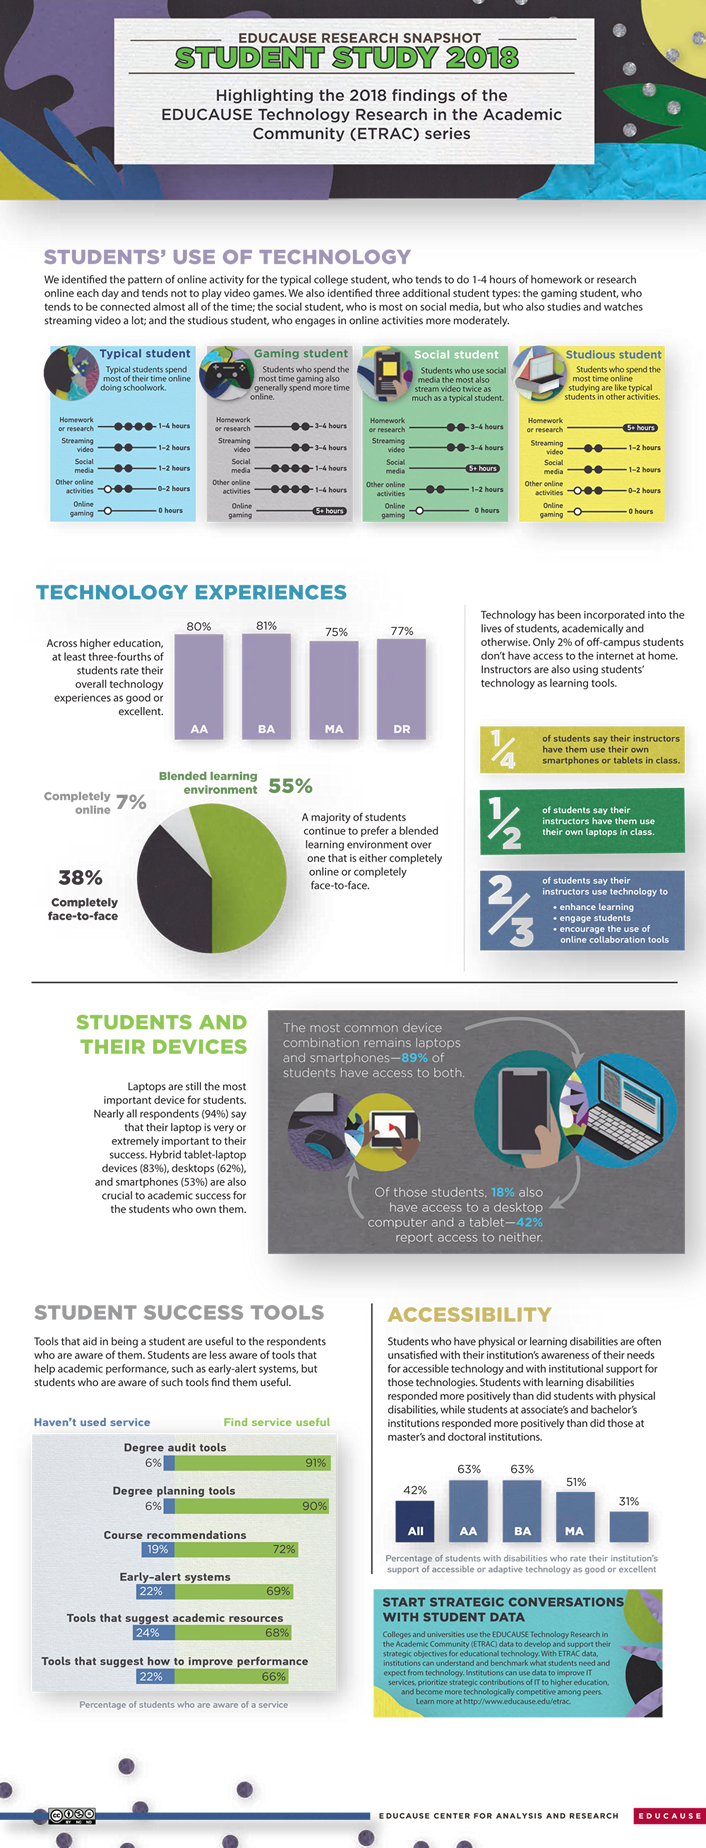 infographic about technology use